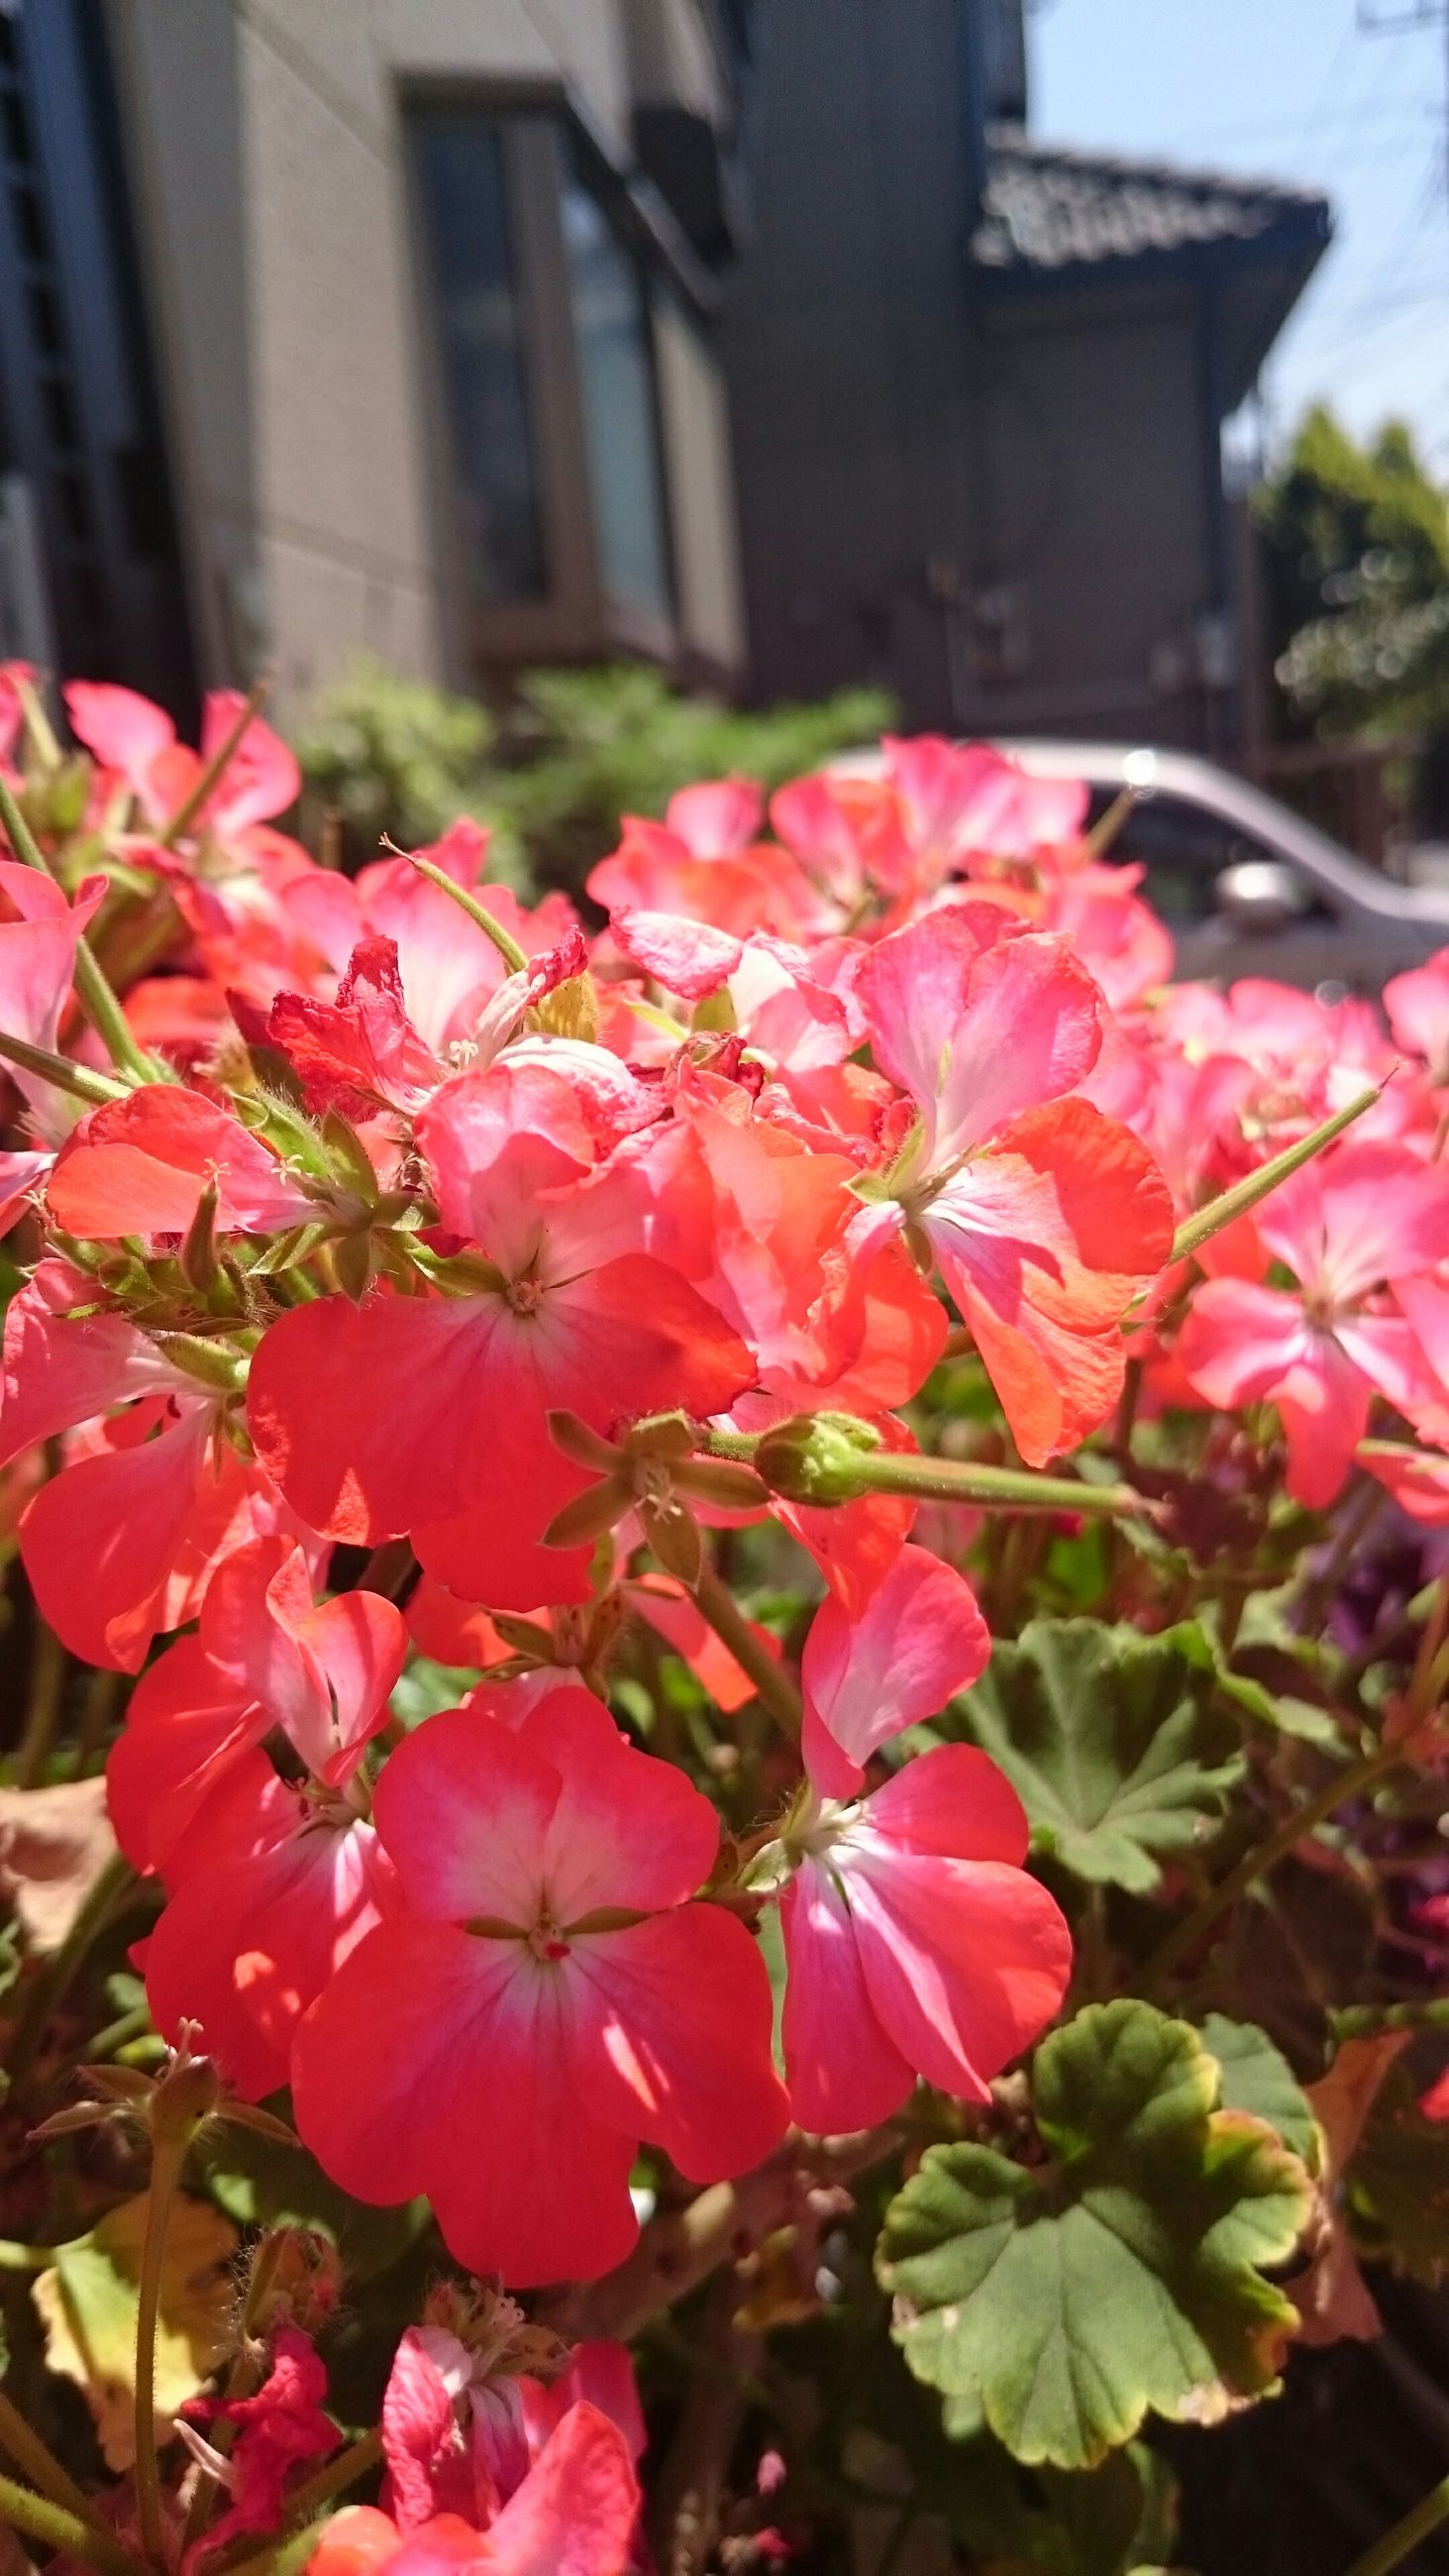 flower, freshness, fragility, petal, growth, beauty in nature, red, pink color, flower head, blooming, nature, close-up, focus on foreground, leaf, blossom, in bloom, plant, building exterior, day, built structure